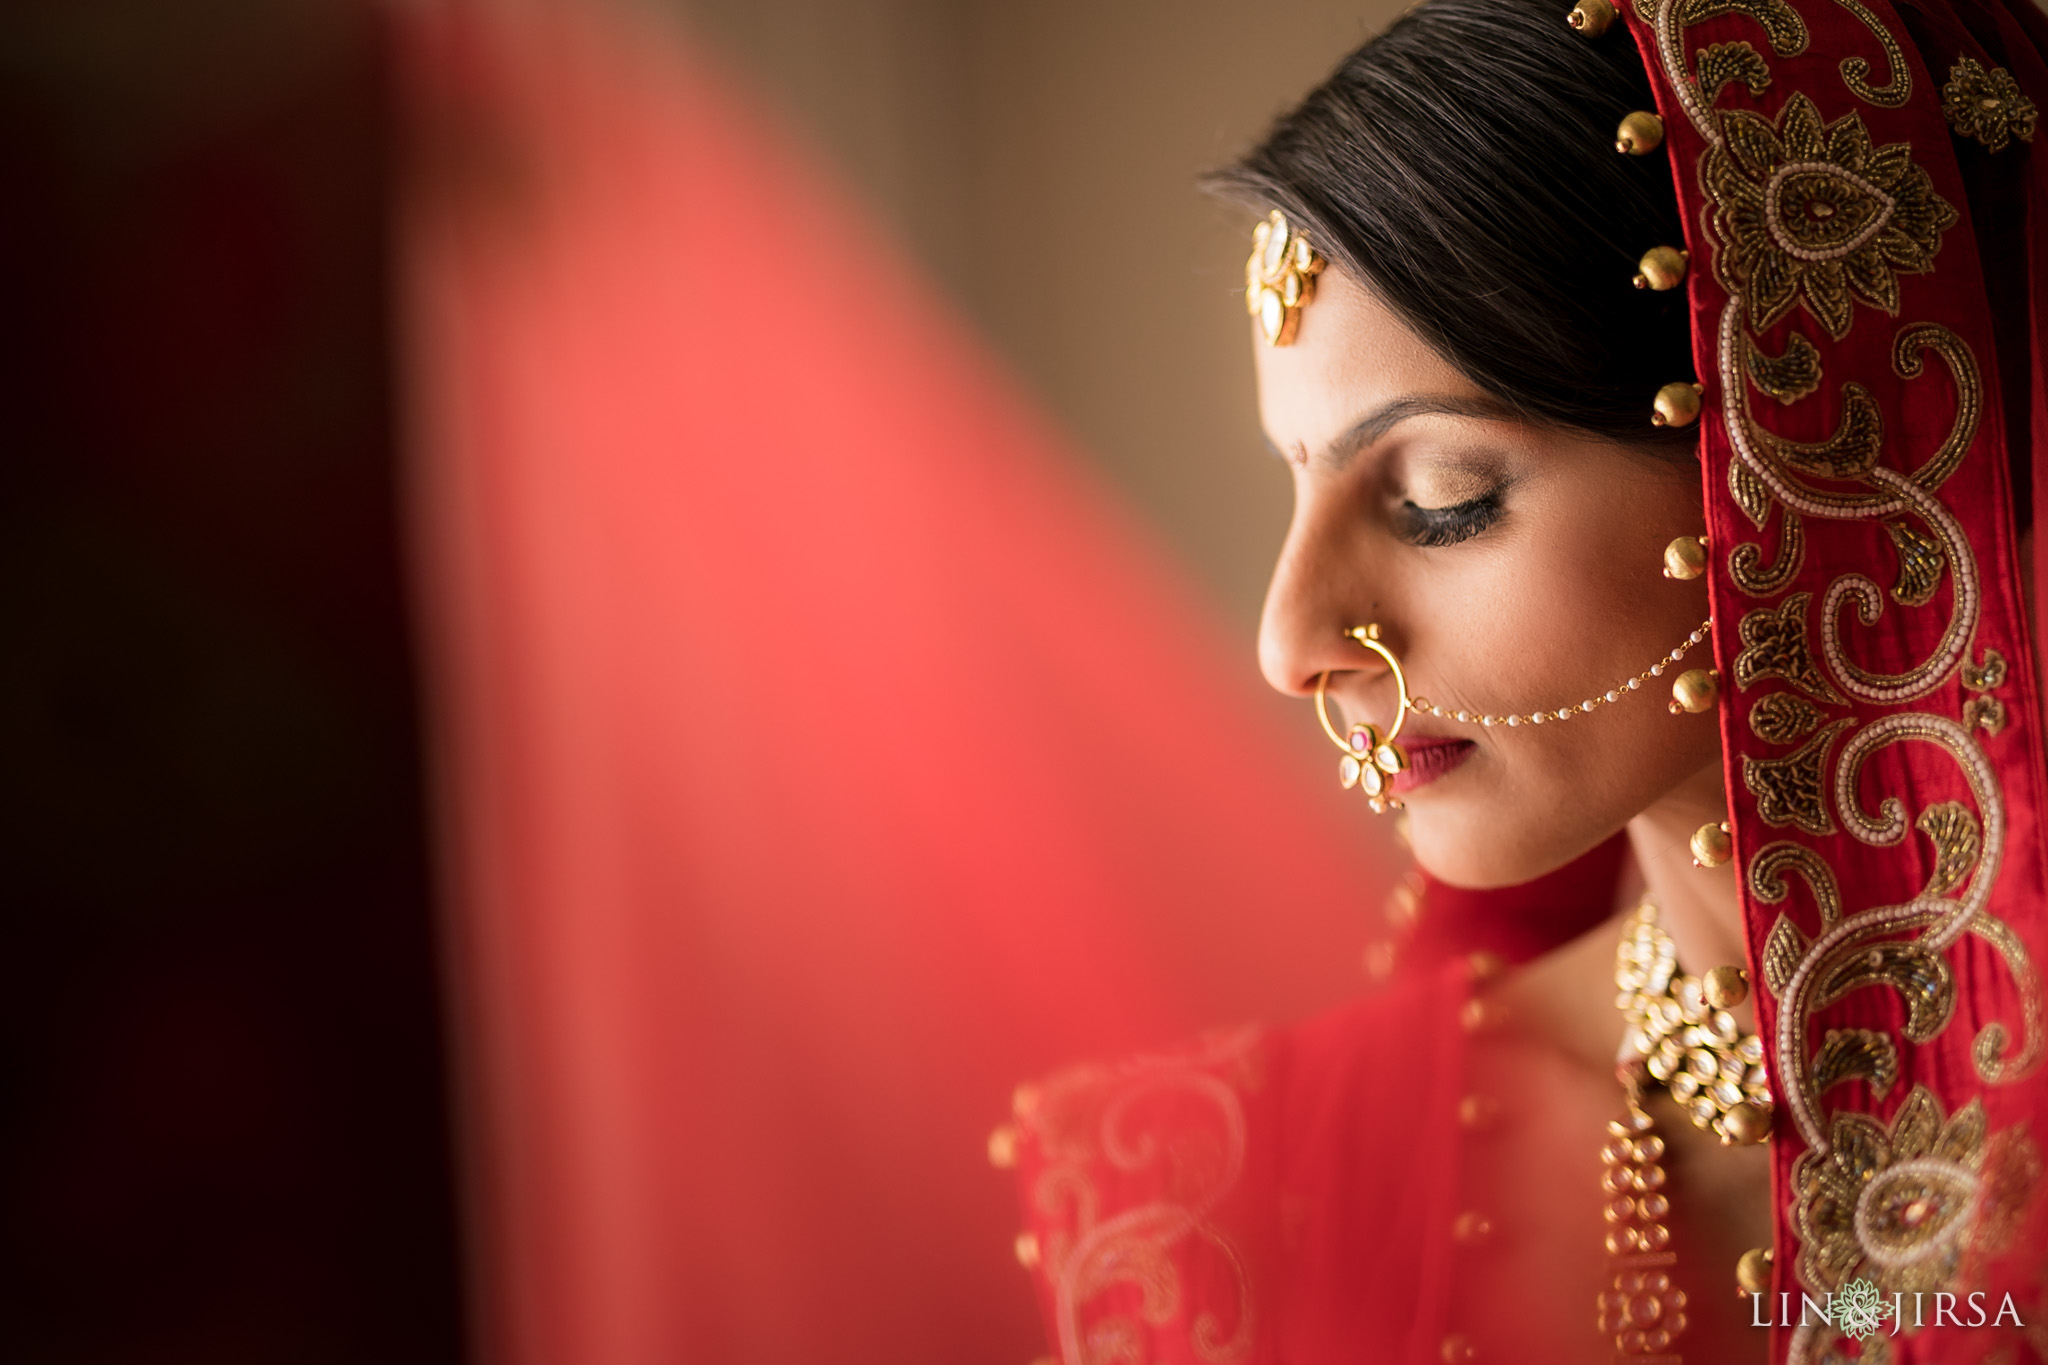 24 newport beach marriott hotel indian wedding bridesmaids photography